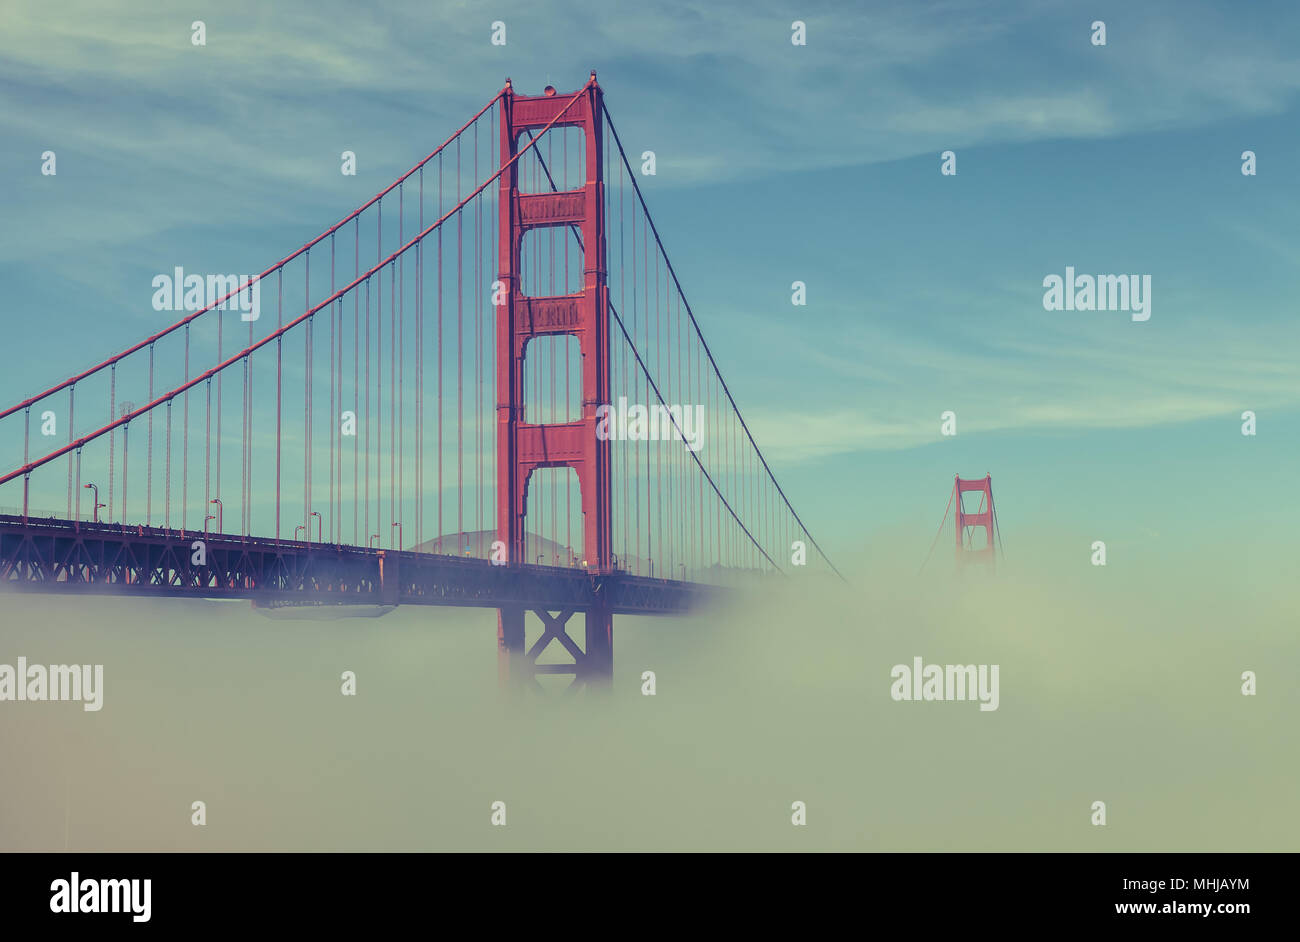 Thick low fog formed under the Golden Gate Bridge in San Francisco, California, United States, on an early spring morning. - Stock Image